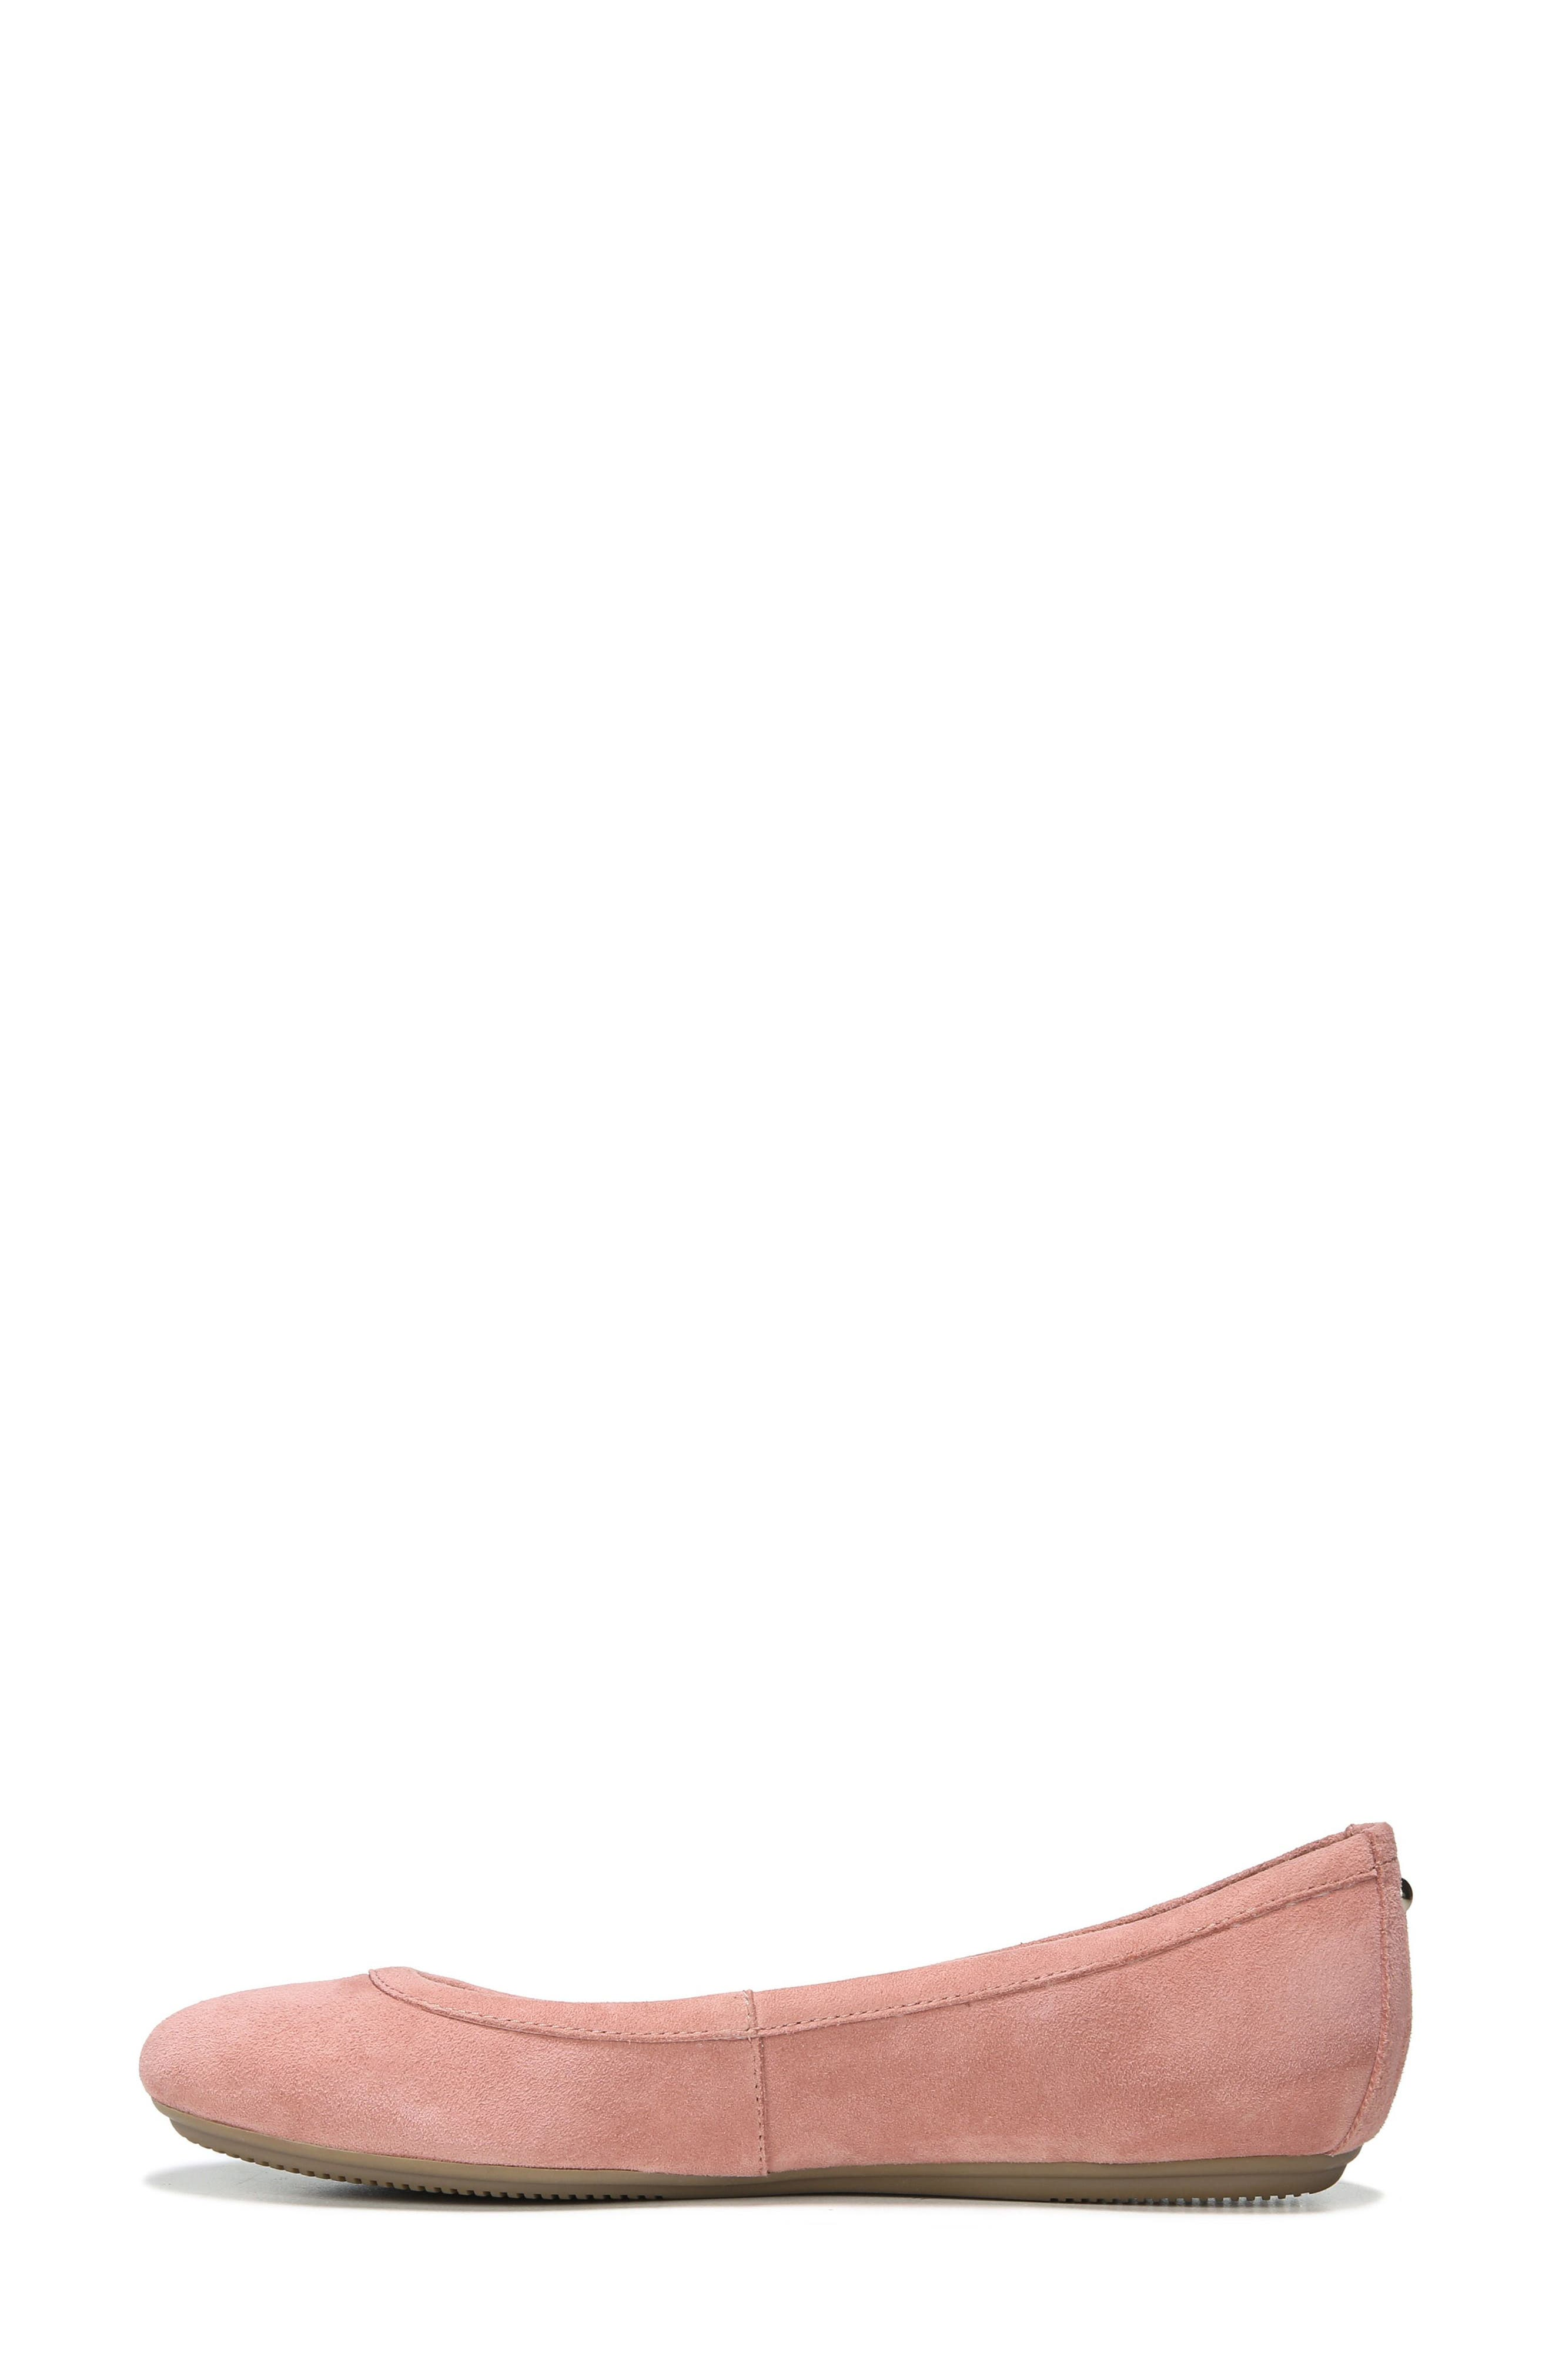 NATURALIZER, Brittany Ballet Flat, Alternate thumbnail 3, color, PEONY PINK SUEDE